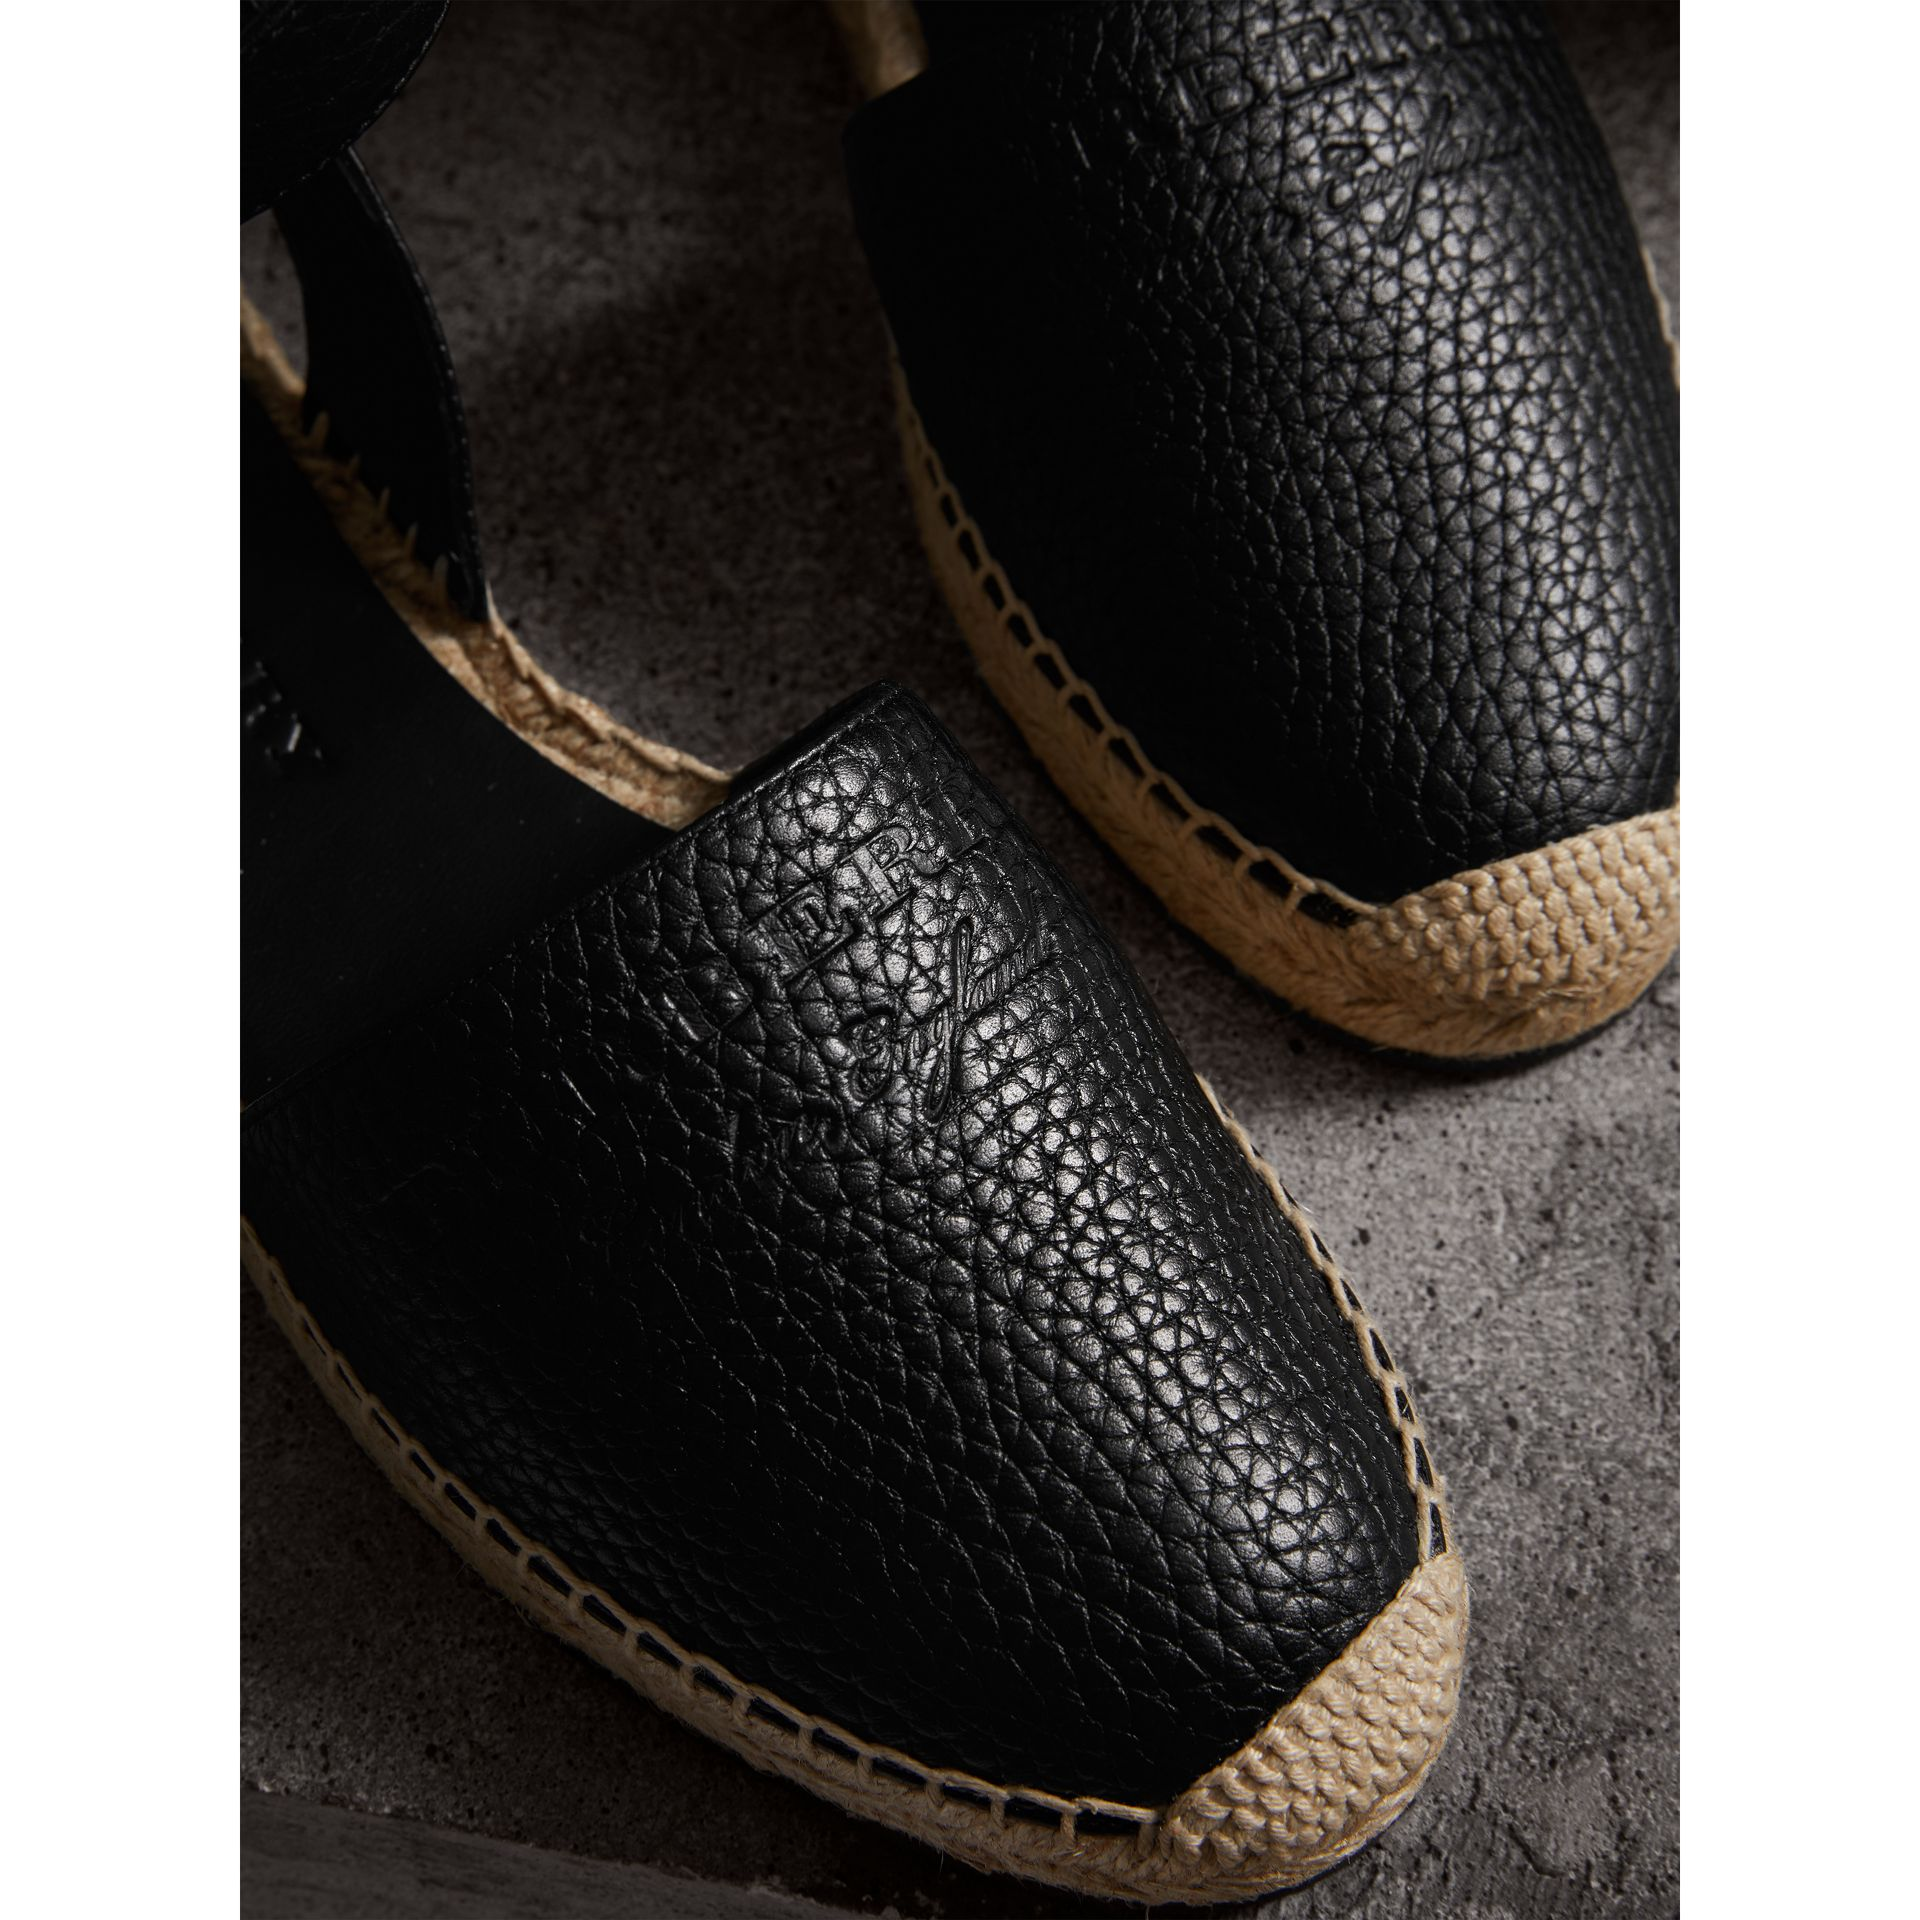 Embossed Grainy Leather Espadrille Sandals in Black - Women | Burberry Canada - gallery image 1